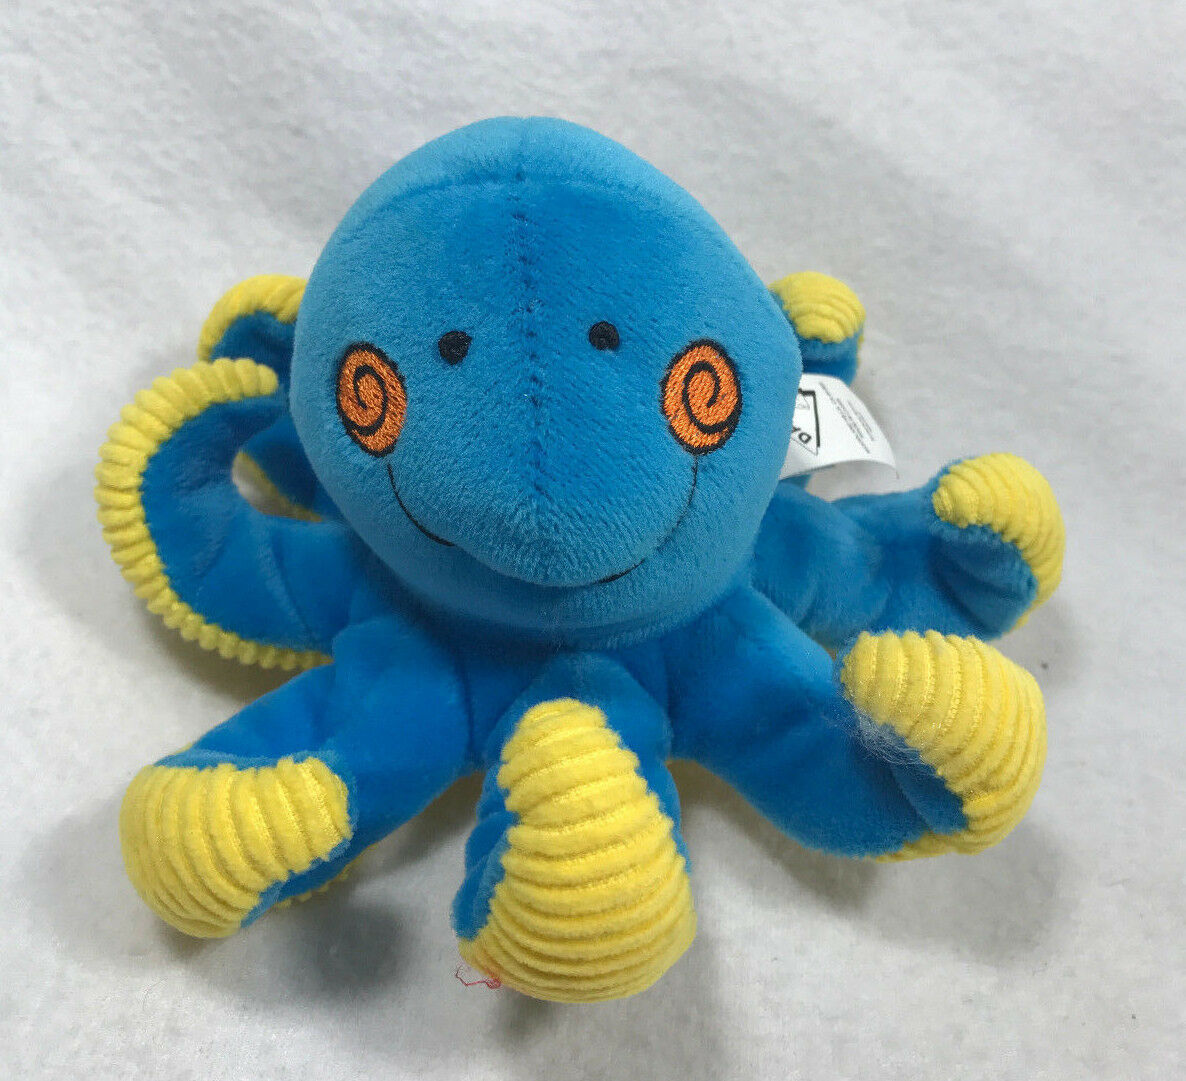 Dakin Octopus Plush Blau Gelb Baby Rattle Stuffed Animal Lovey Applause 5